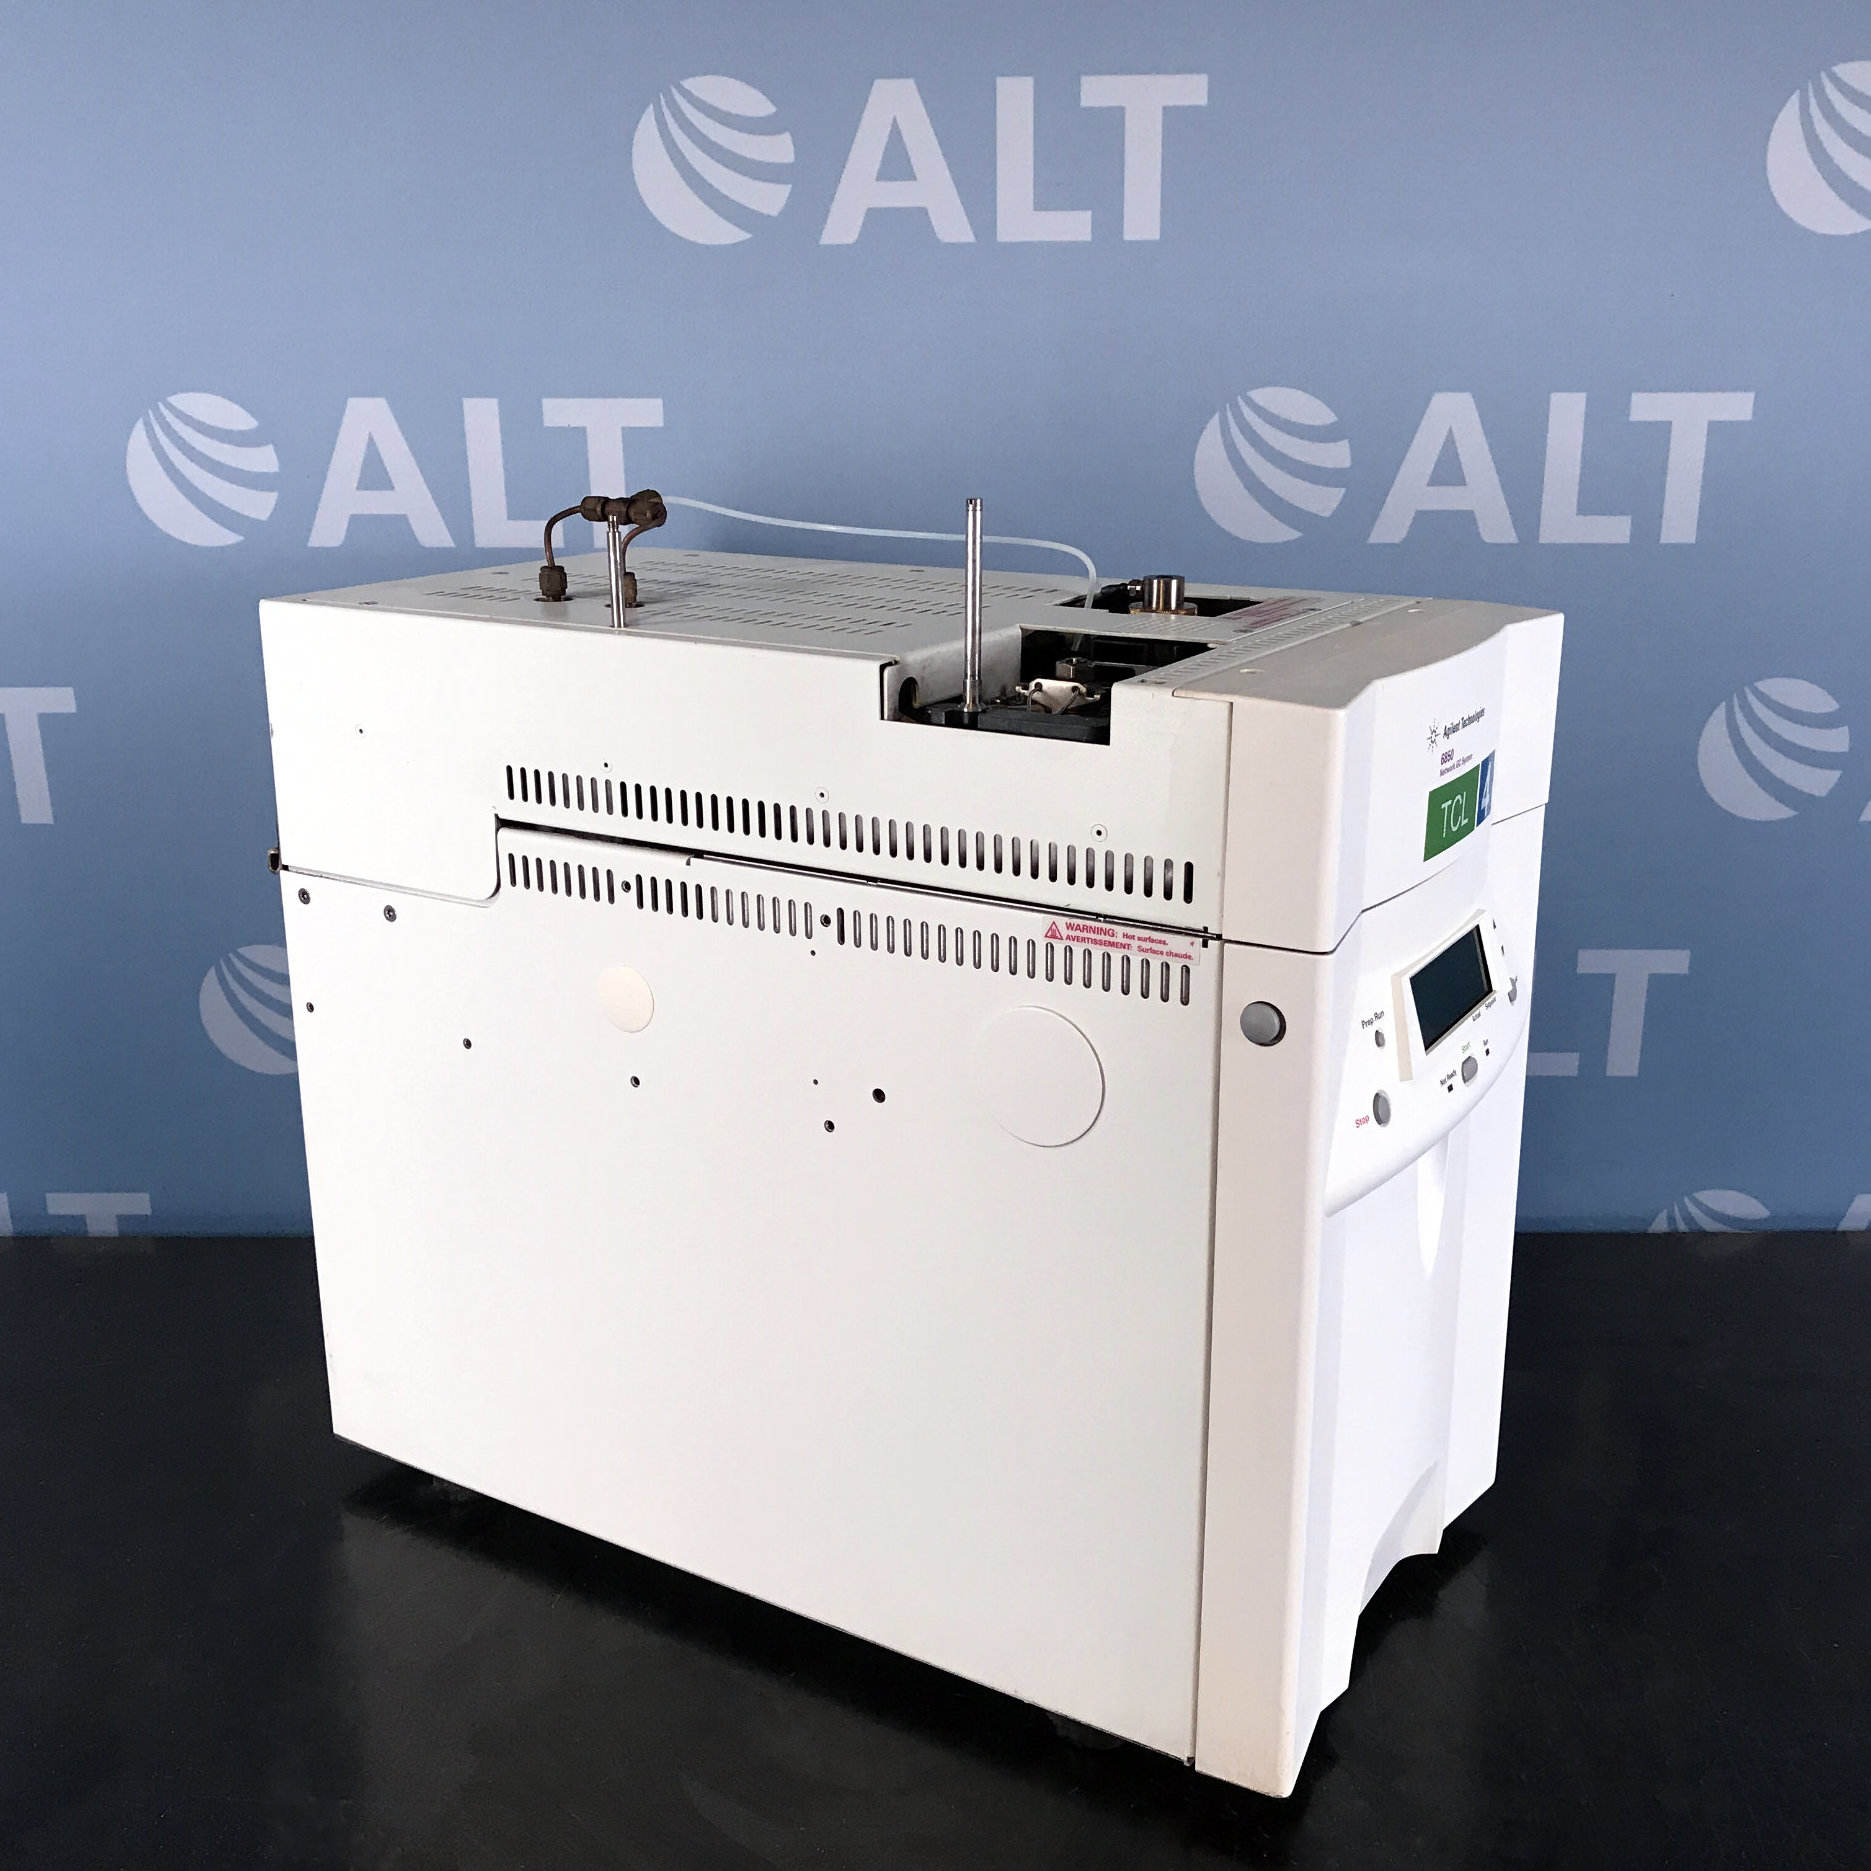 Agilent Technologies 6850 Series GC System (G2630A) Image